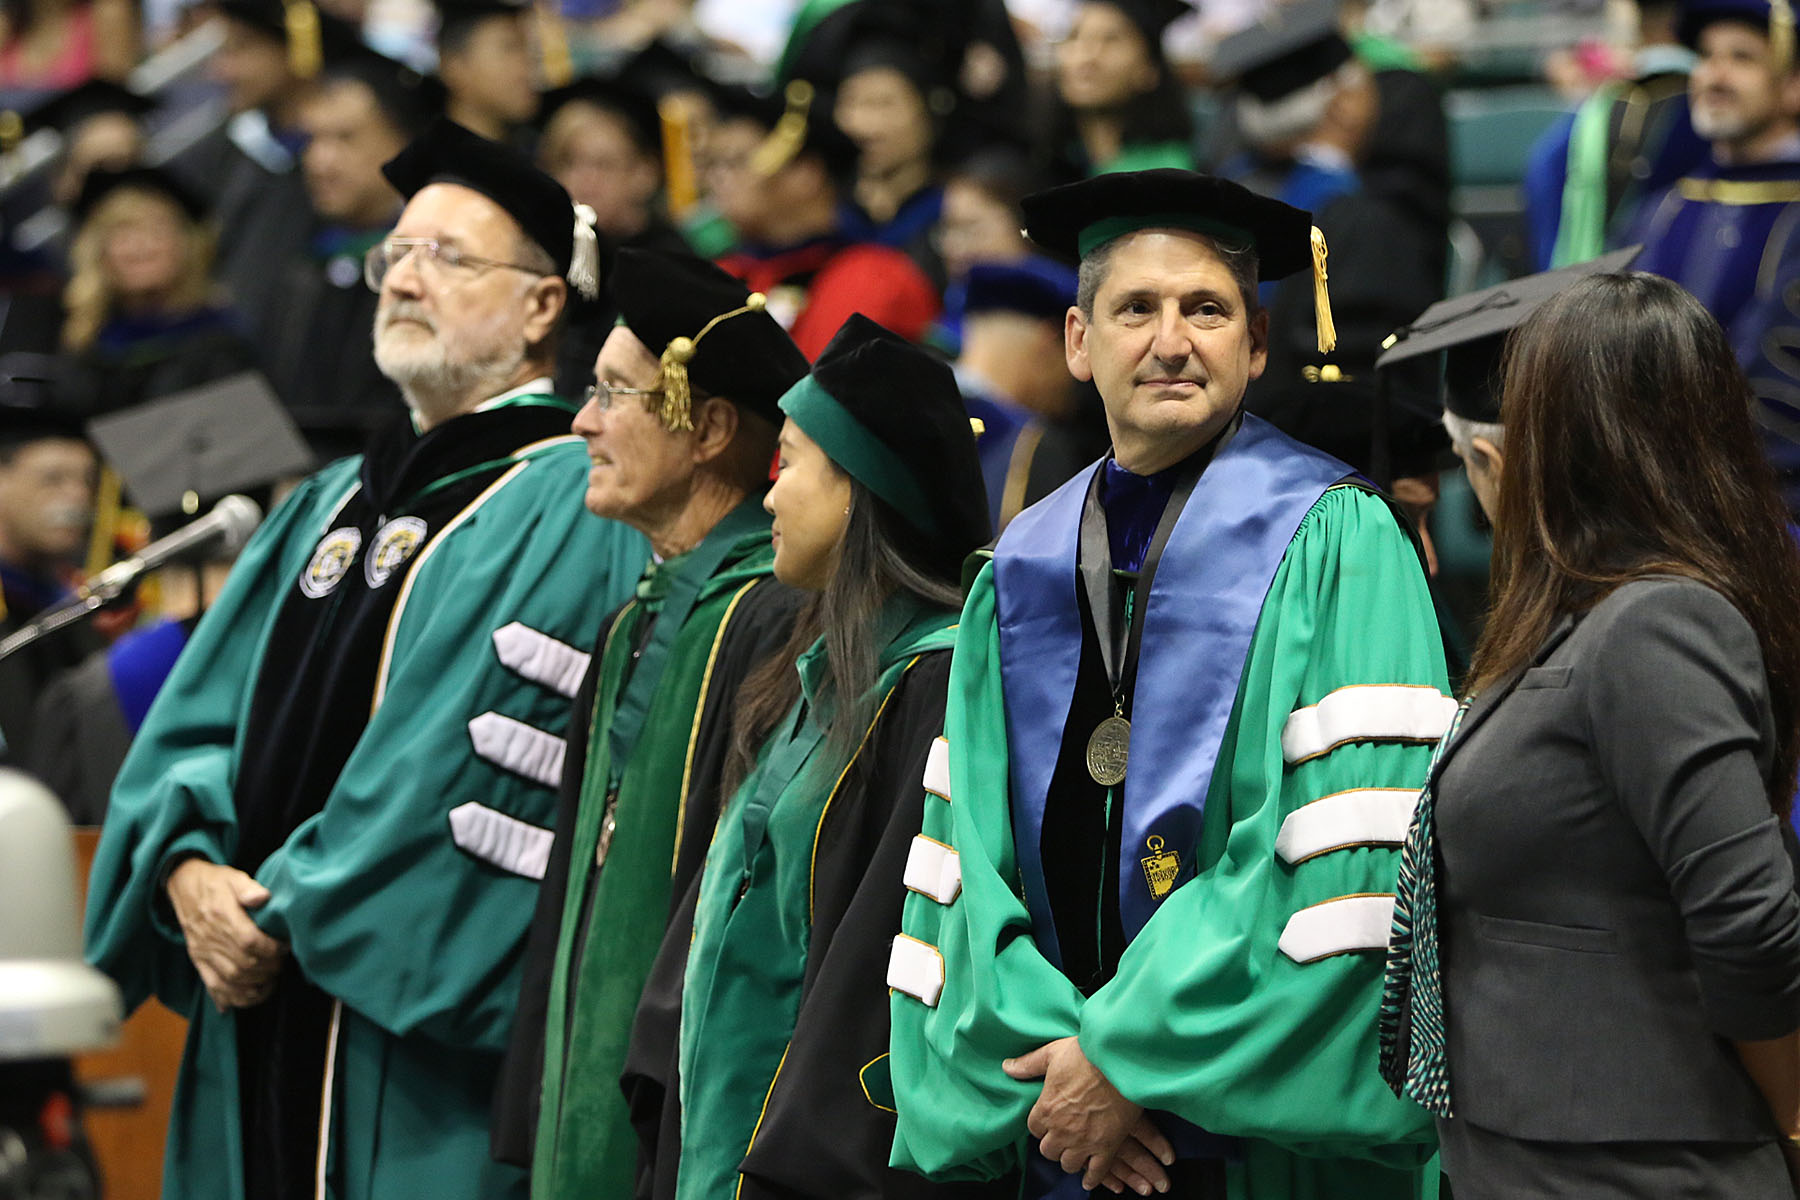 University of Hawaii President David Lassner during undergrad commencement. 16 may 2015. photograph by Cory Lum/Civil Beat